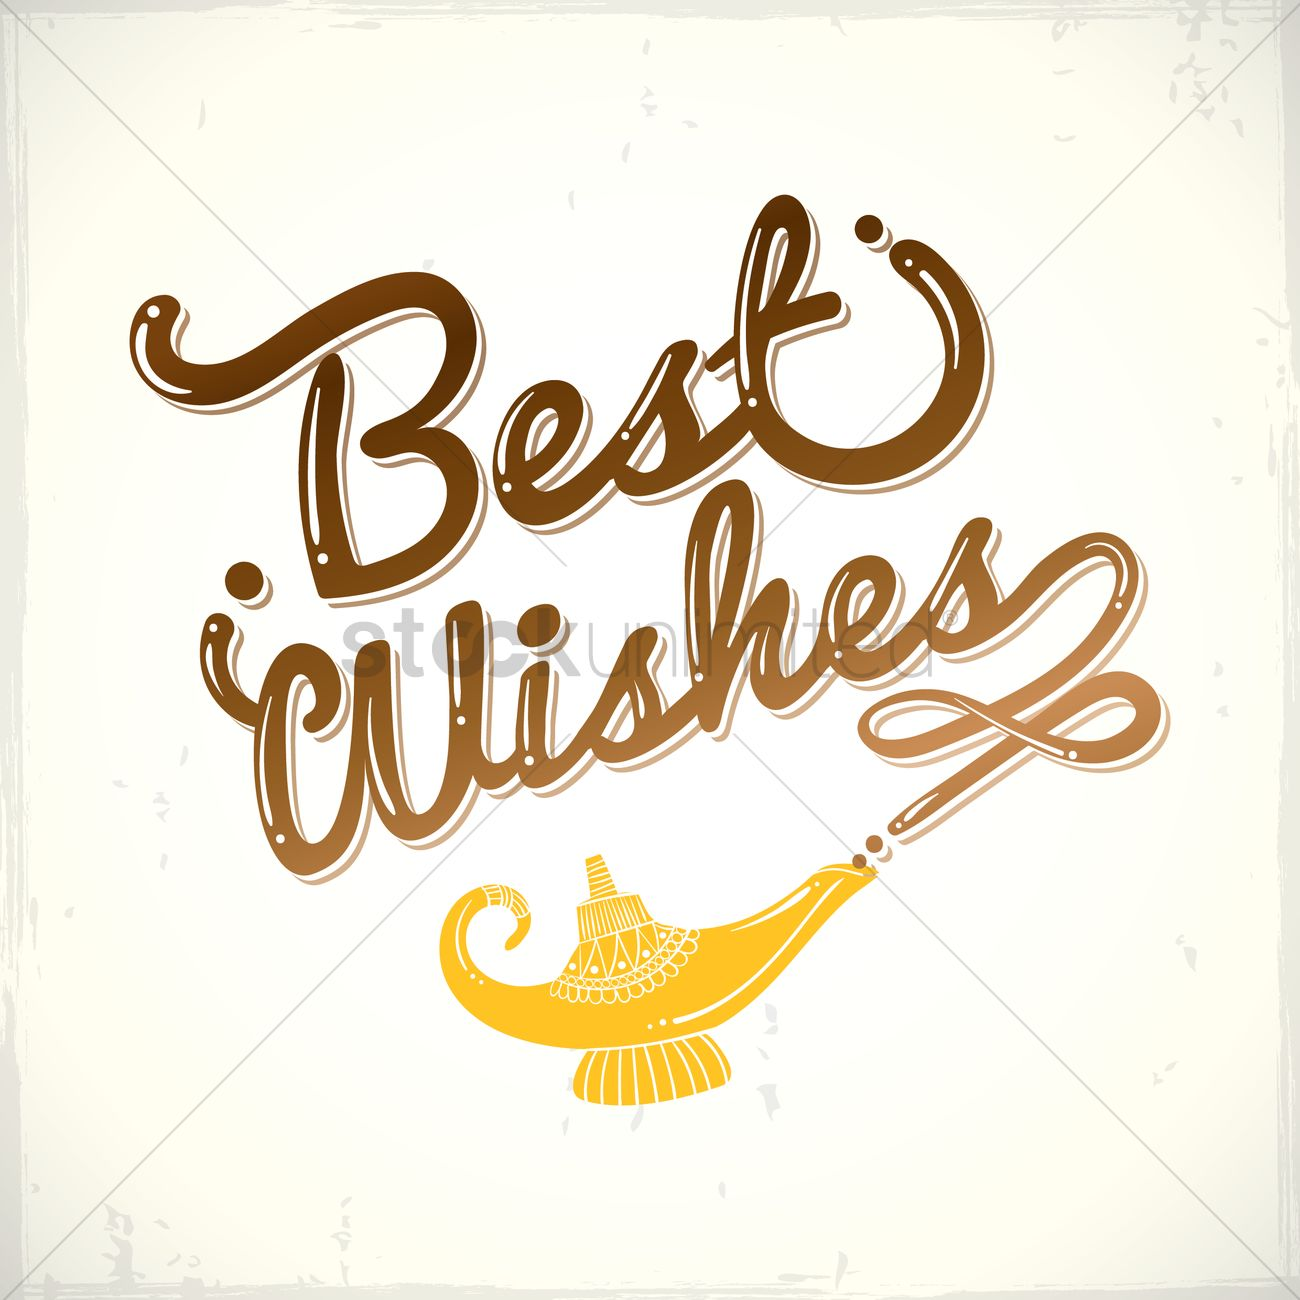 Best Wishes Greetings Vector Image 1811337 Stockunlimited